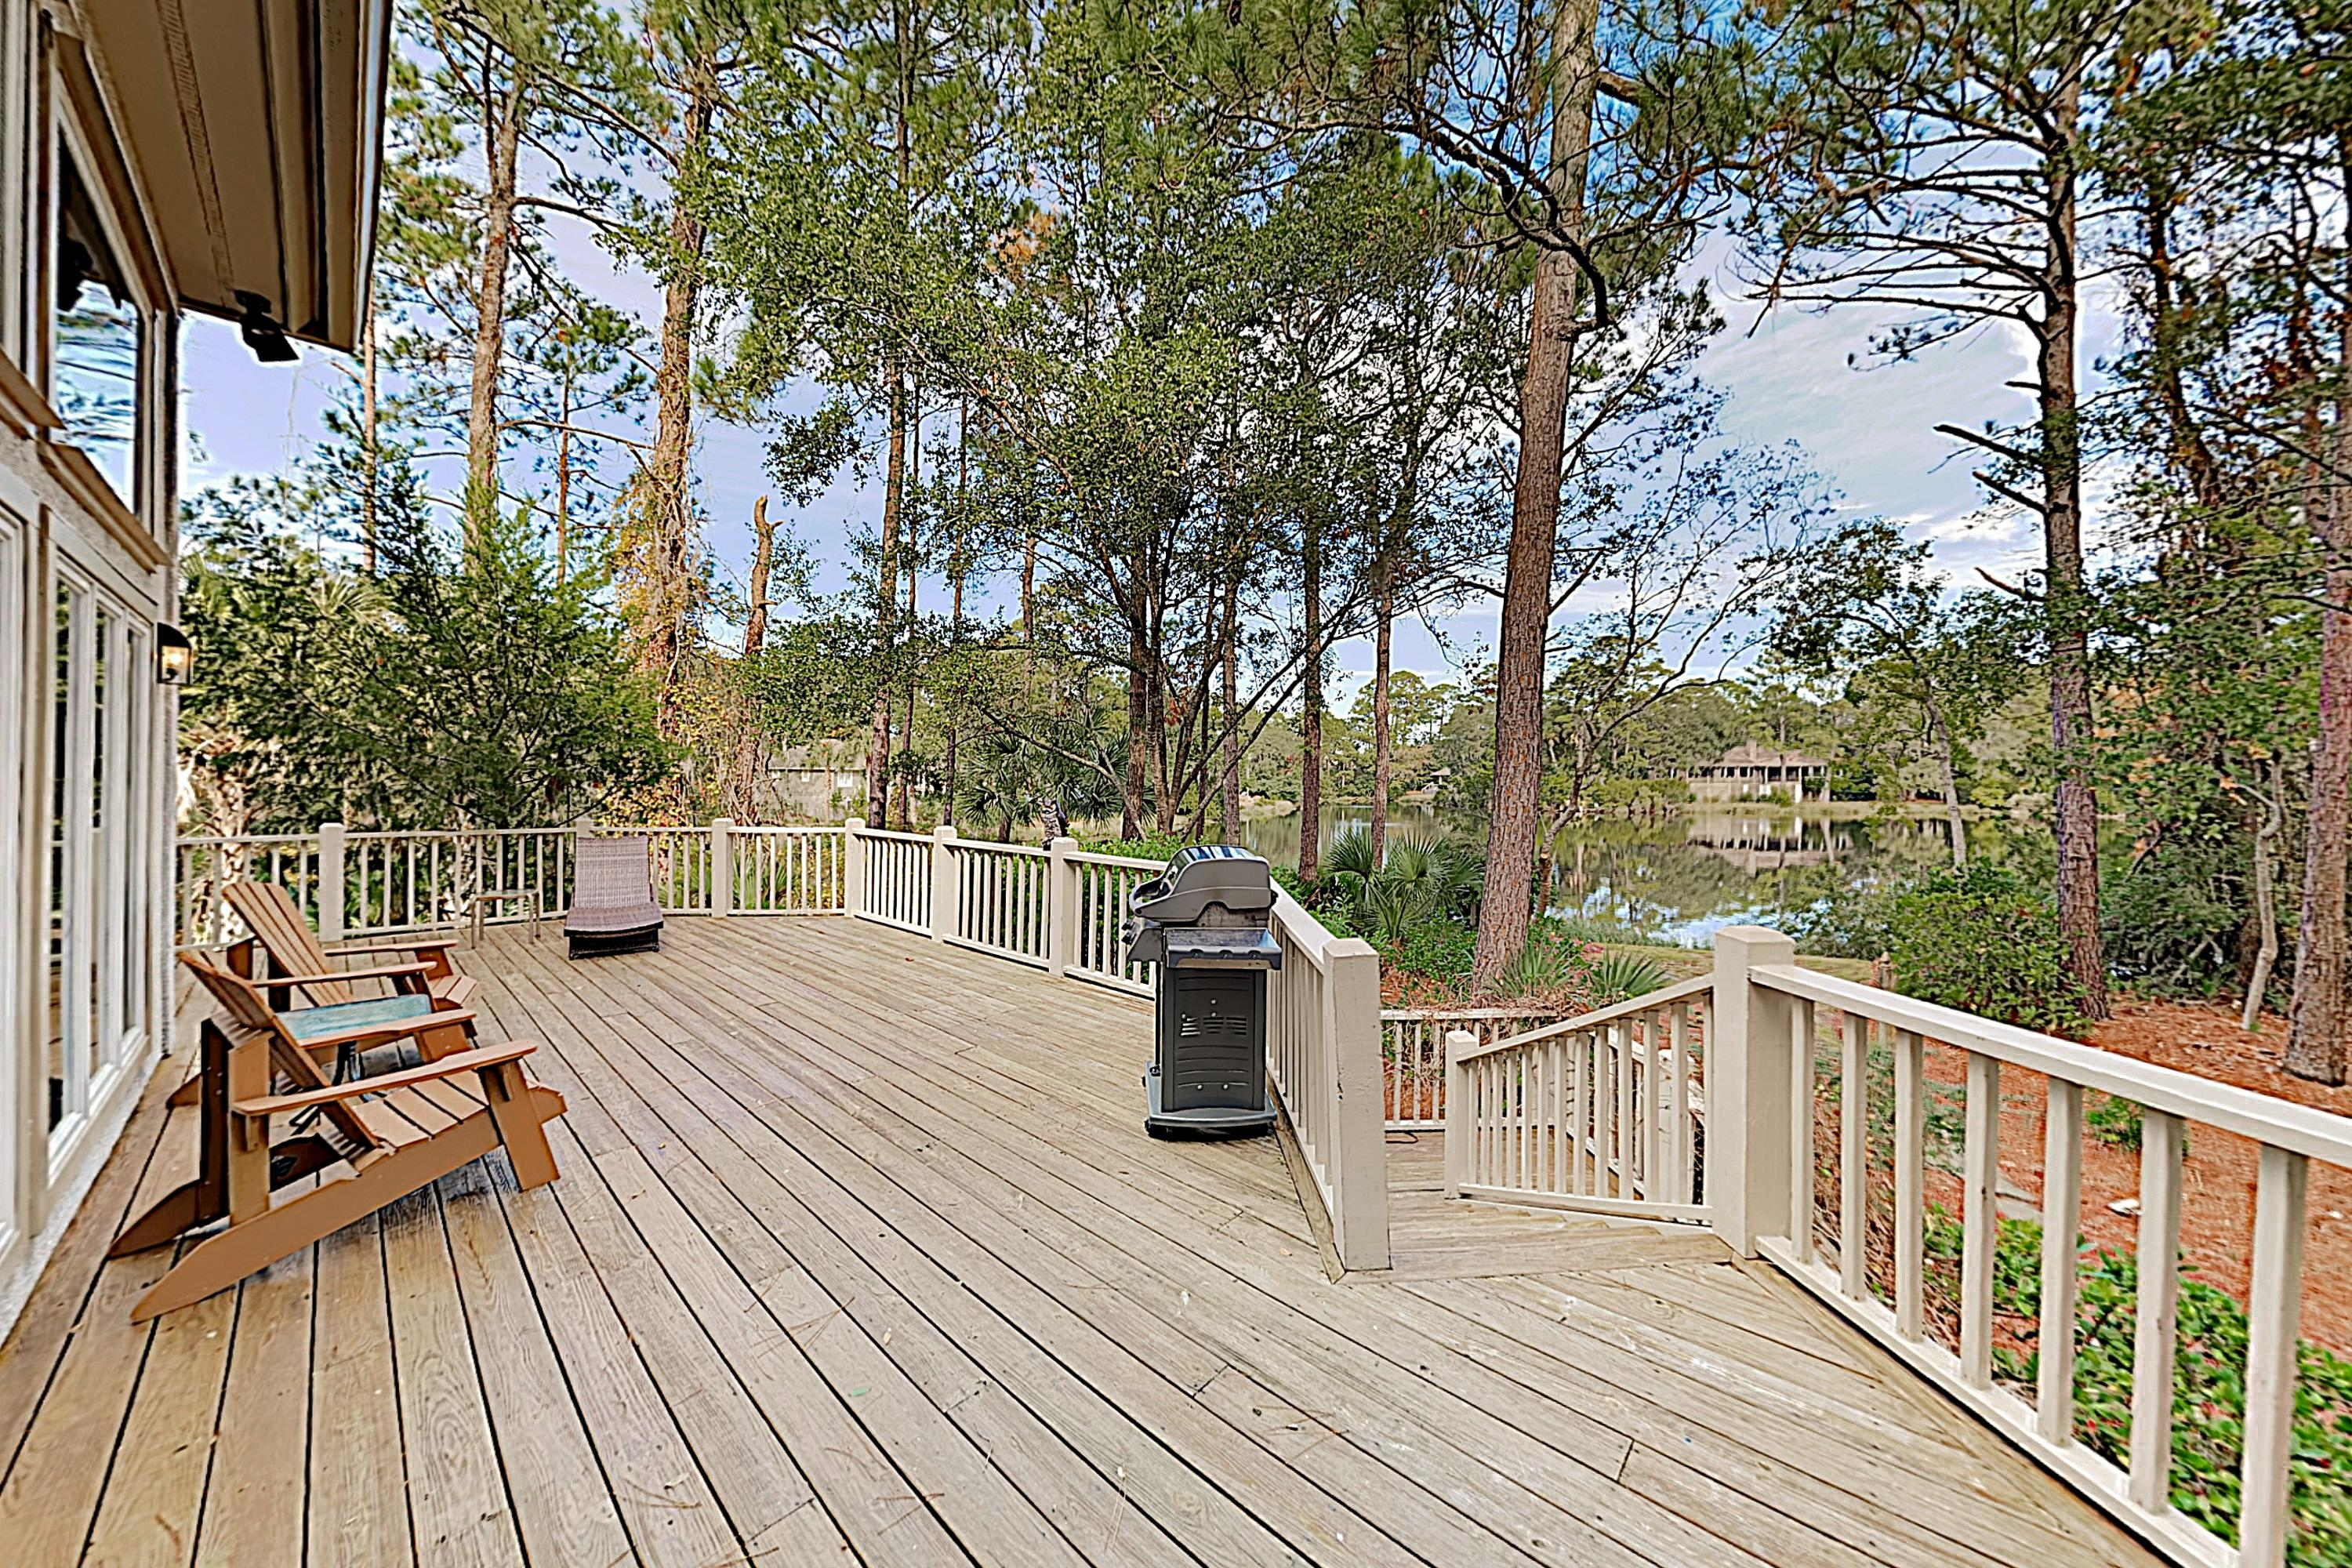 Sip drinks and admire peaceful pond views on the spacious back deck.